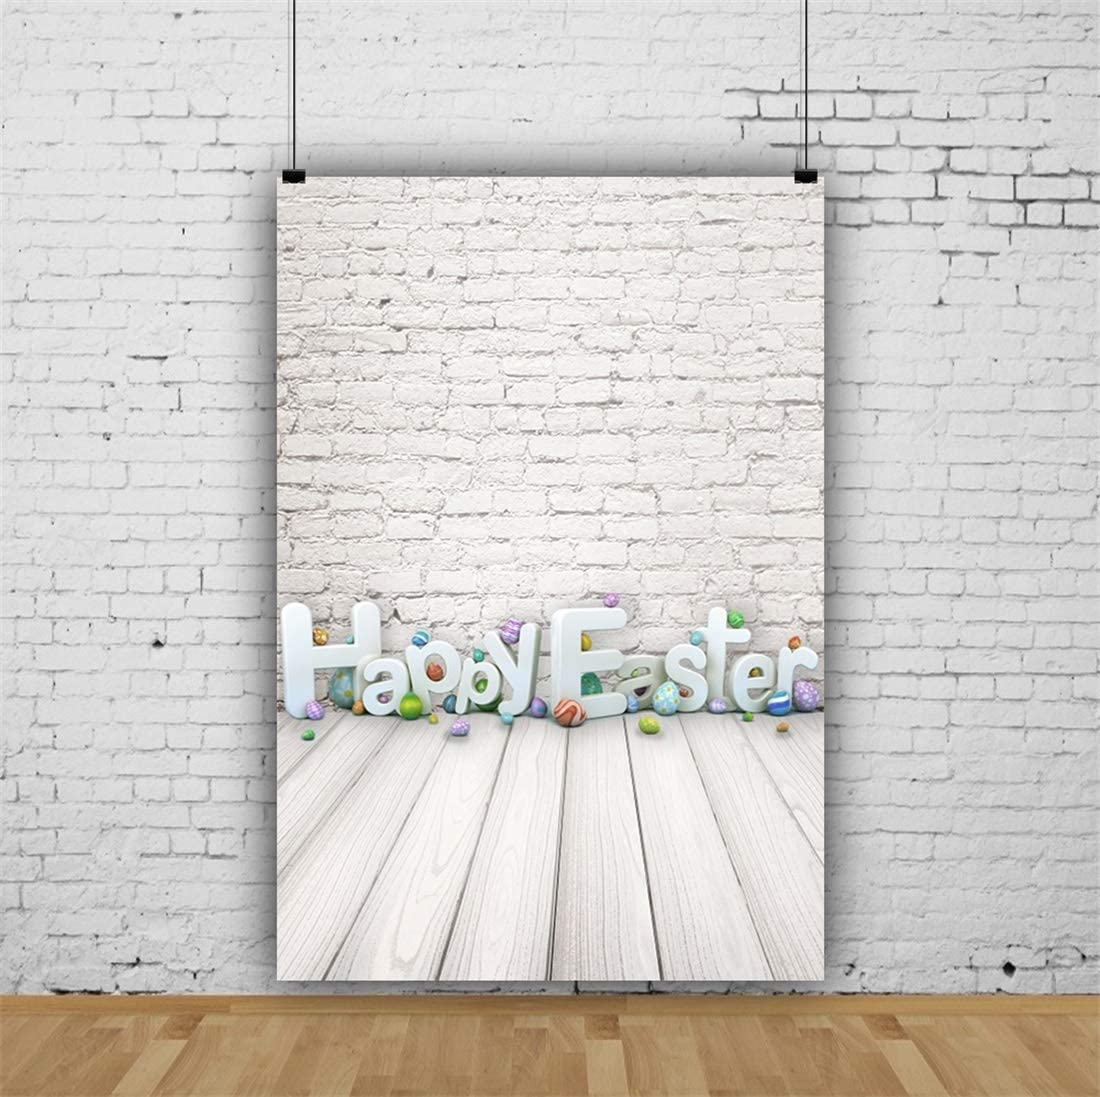 Yeele-Easter-Backdrop 3x5ft Happy Easter Photography Background Photo Backdrops Pictures Studio Props Wallpaper